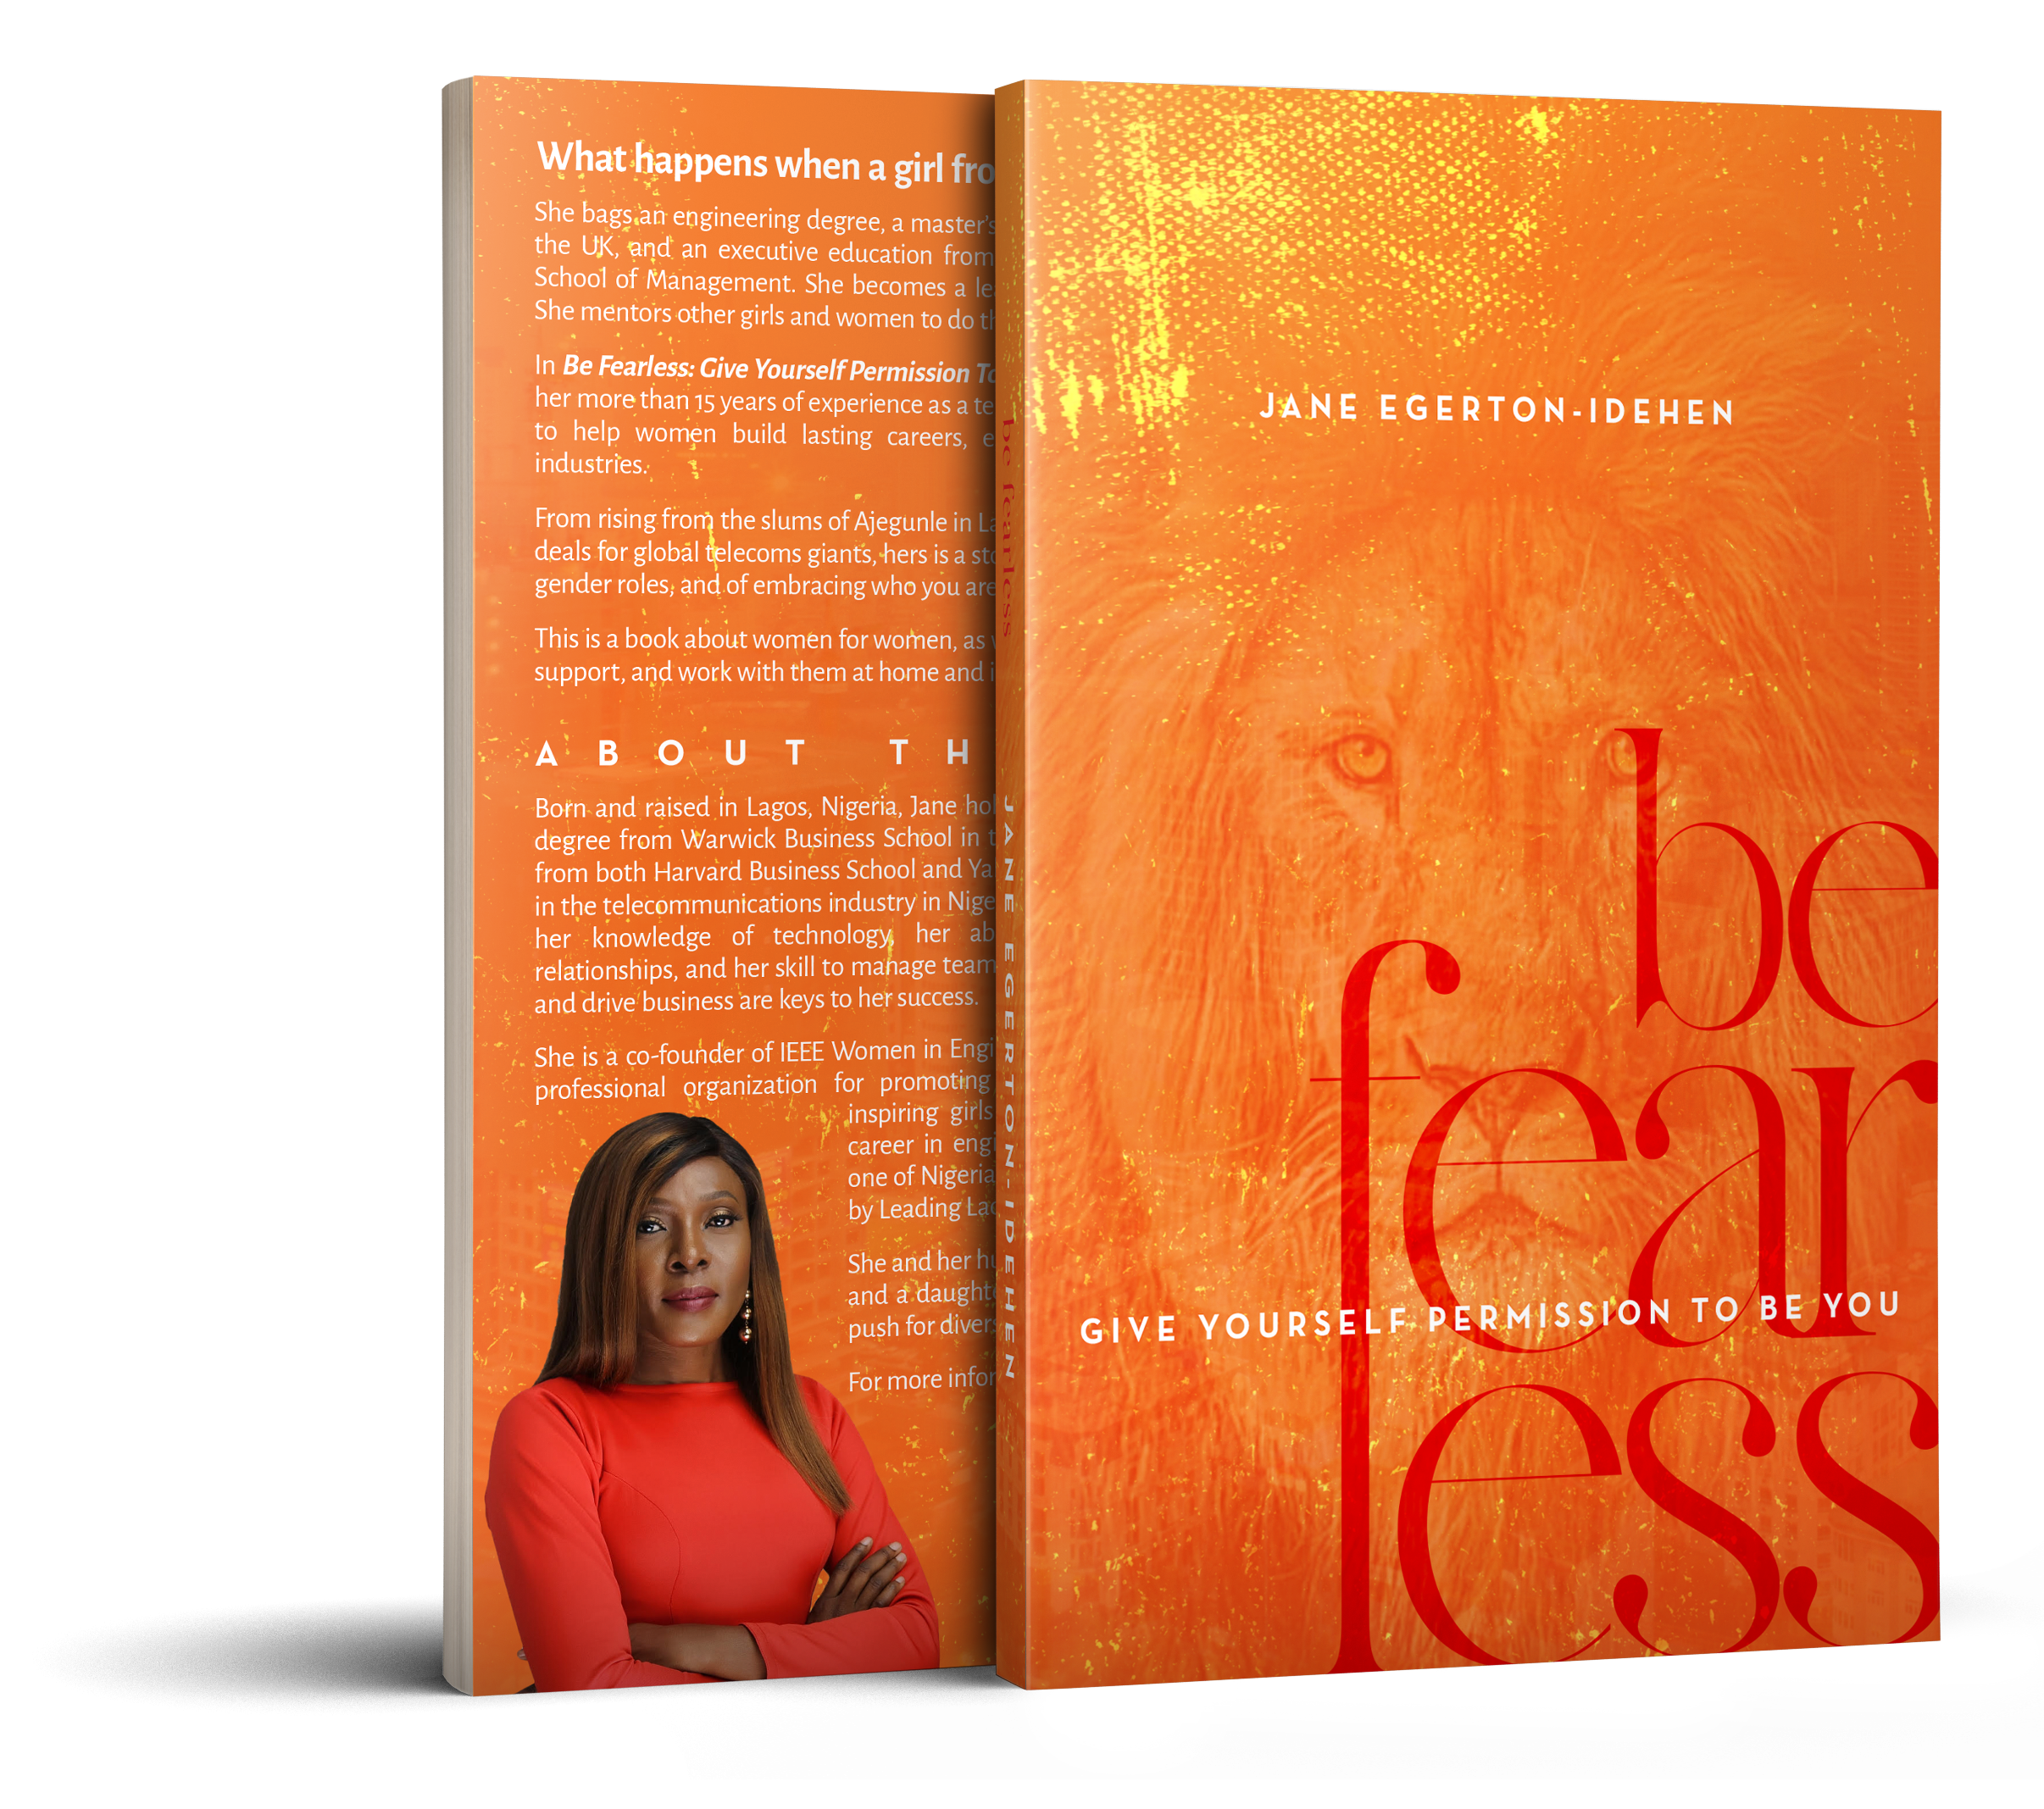 Jane Egerton-Idehen Launches 'Be Fearless, Campaign'